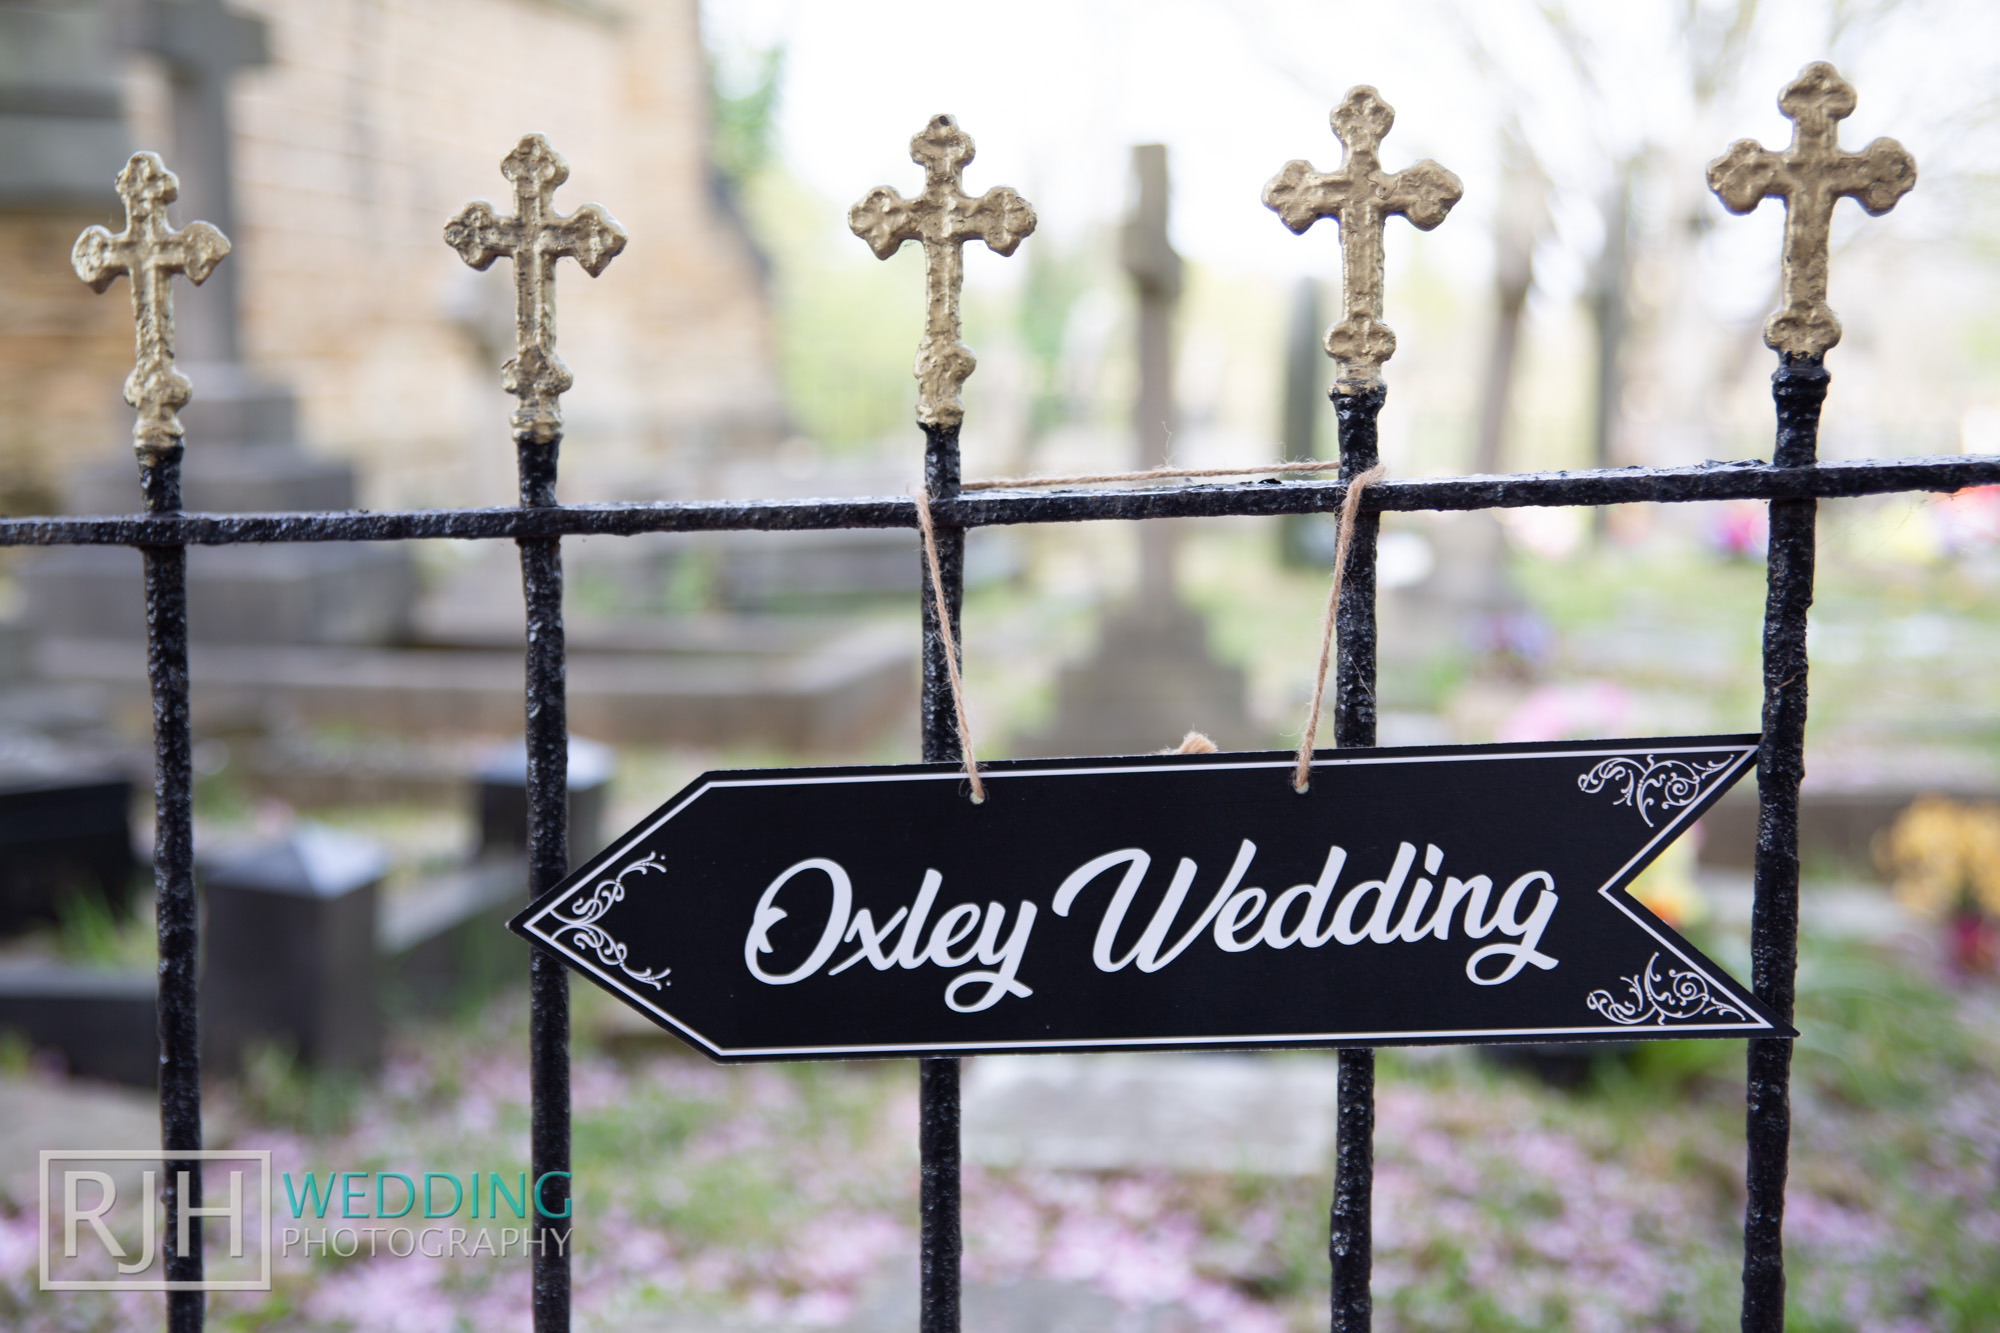 Aston Hall Hotel_Oxley Wedding Preview_Preview_005.jpg